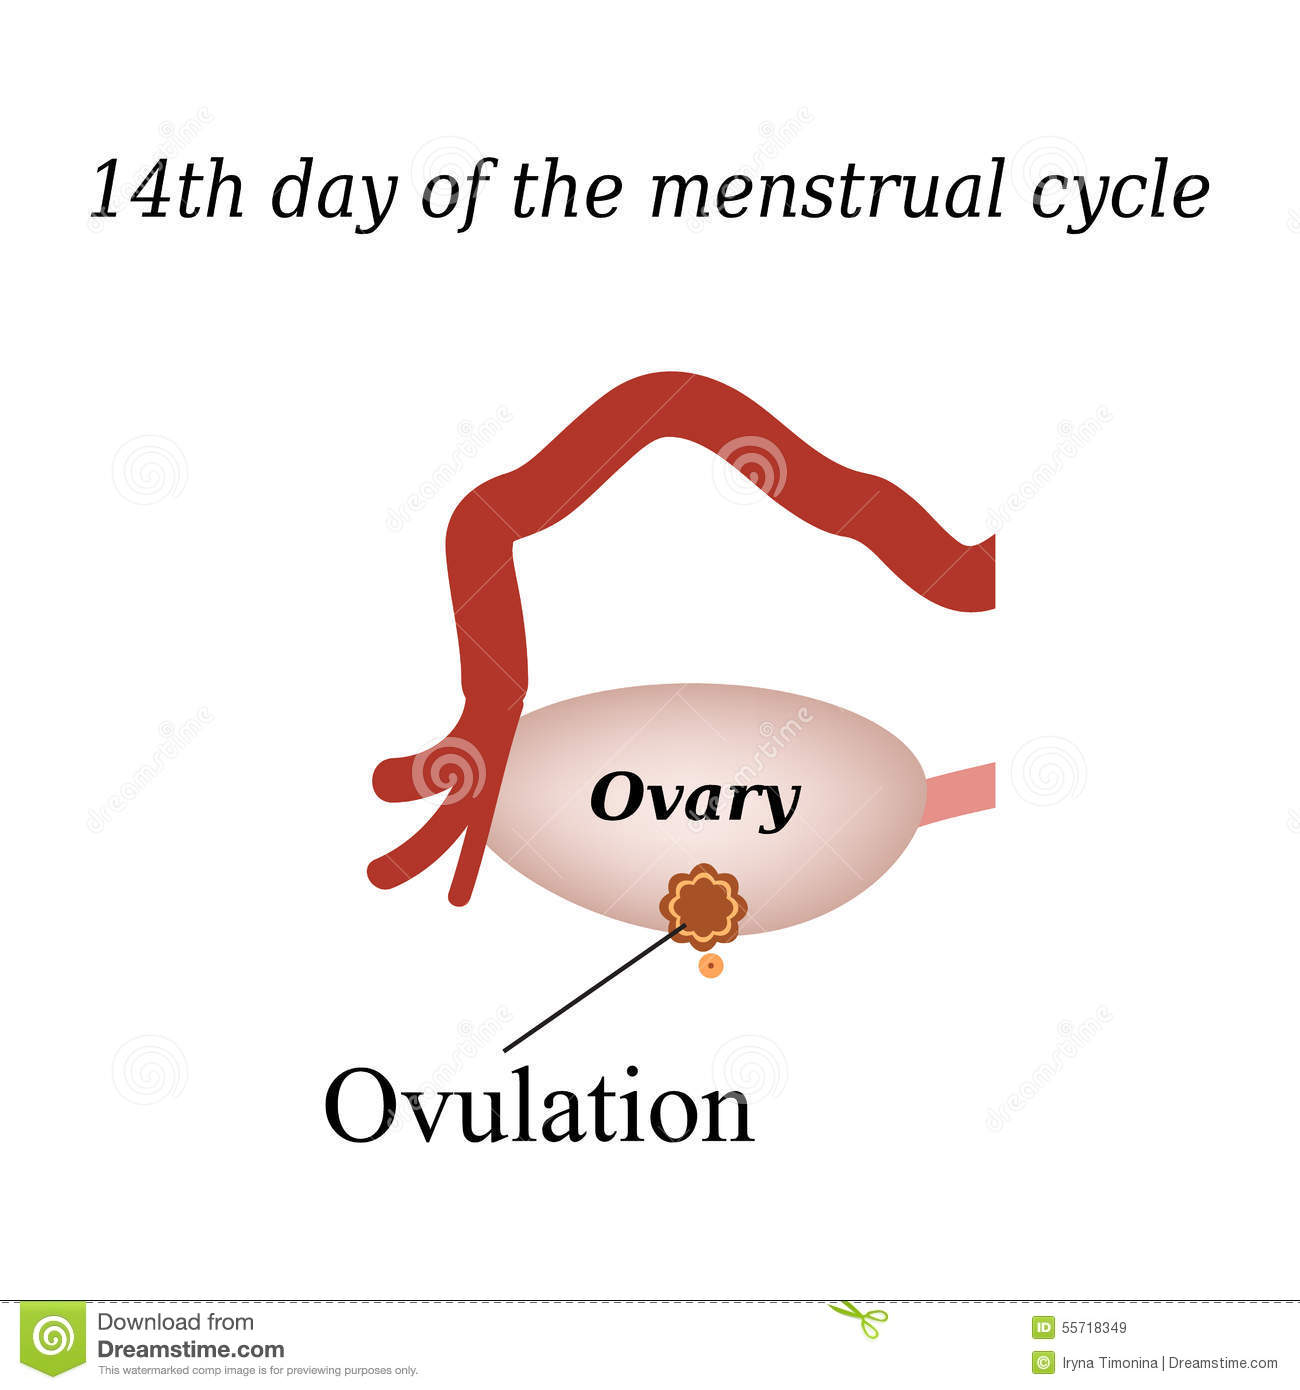 14 day of the menstrual cycle - ovulation. Vector